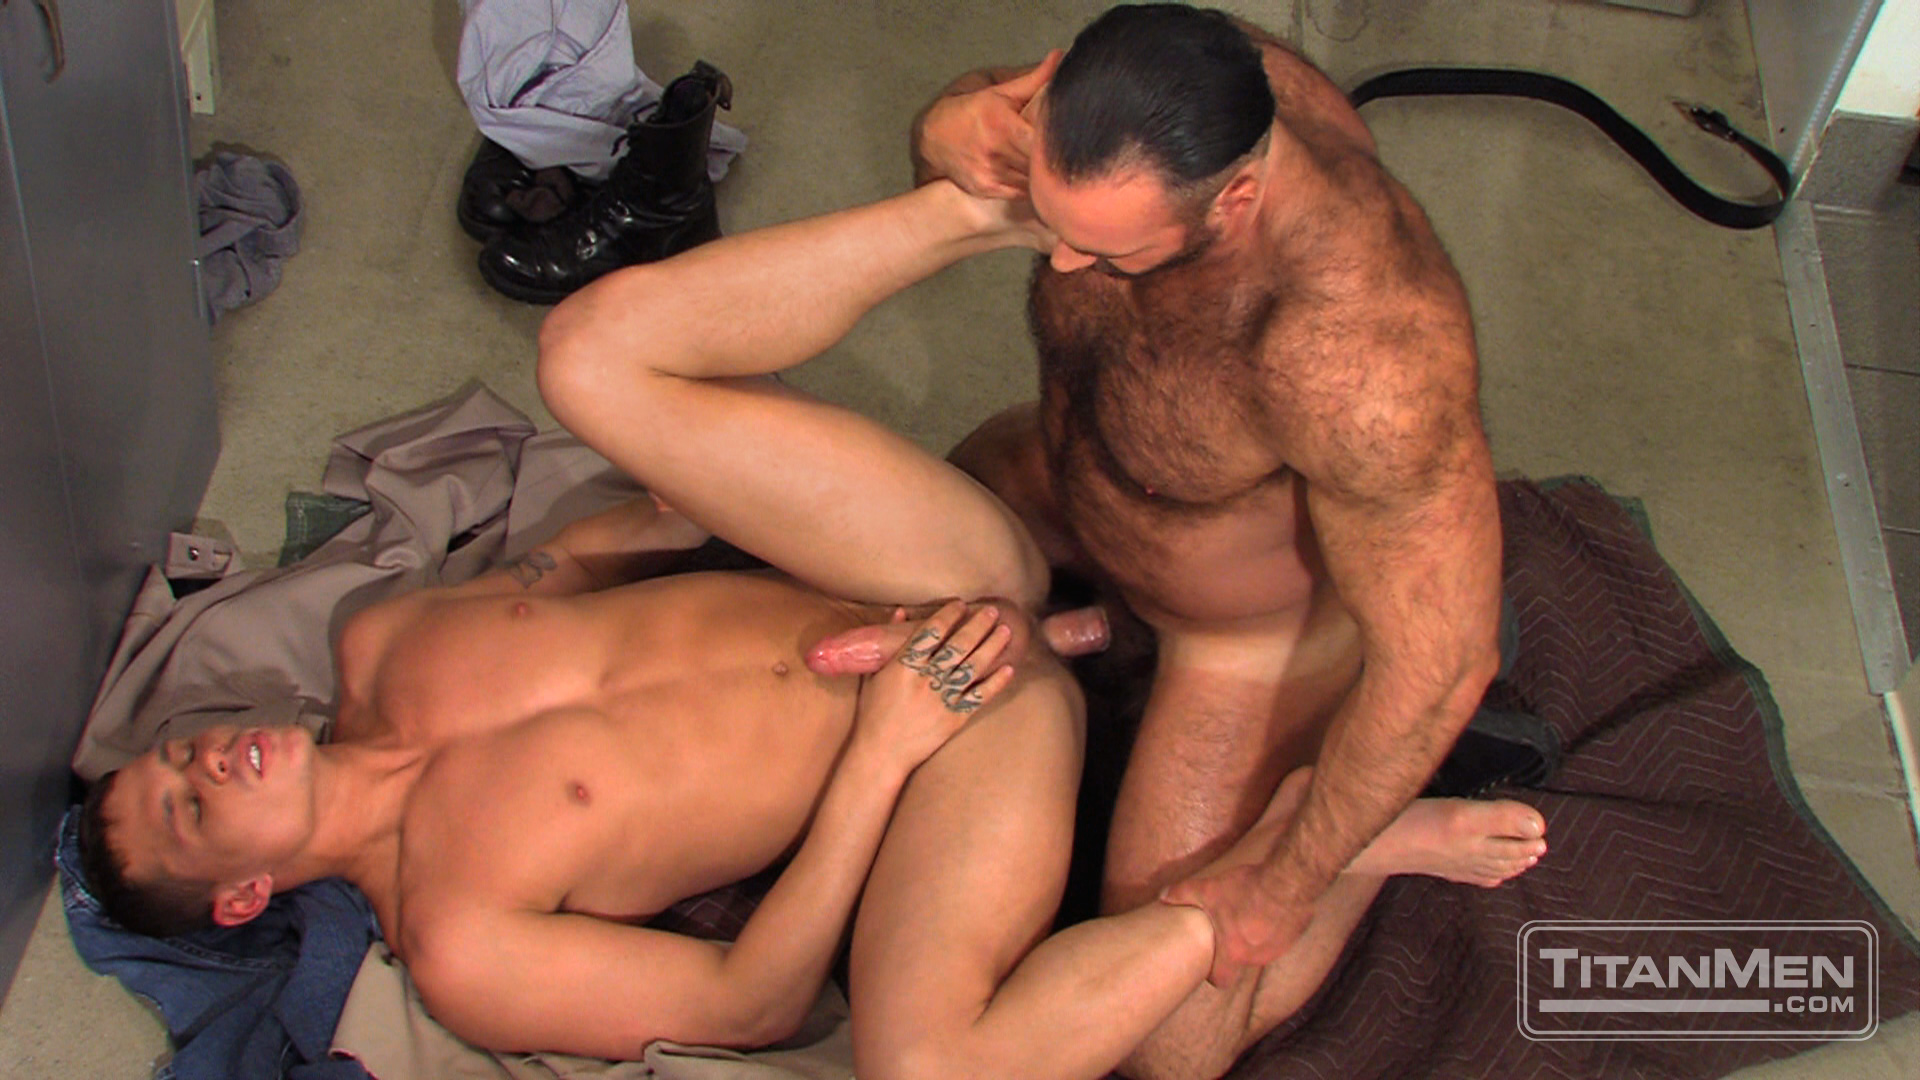 otla scene02 024 Hung Hairy Muscle Corrections Officer Fucks A Smooth Hung Muscle Inmate